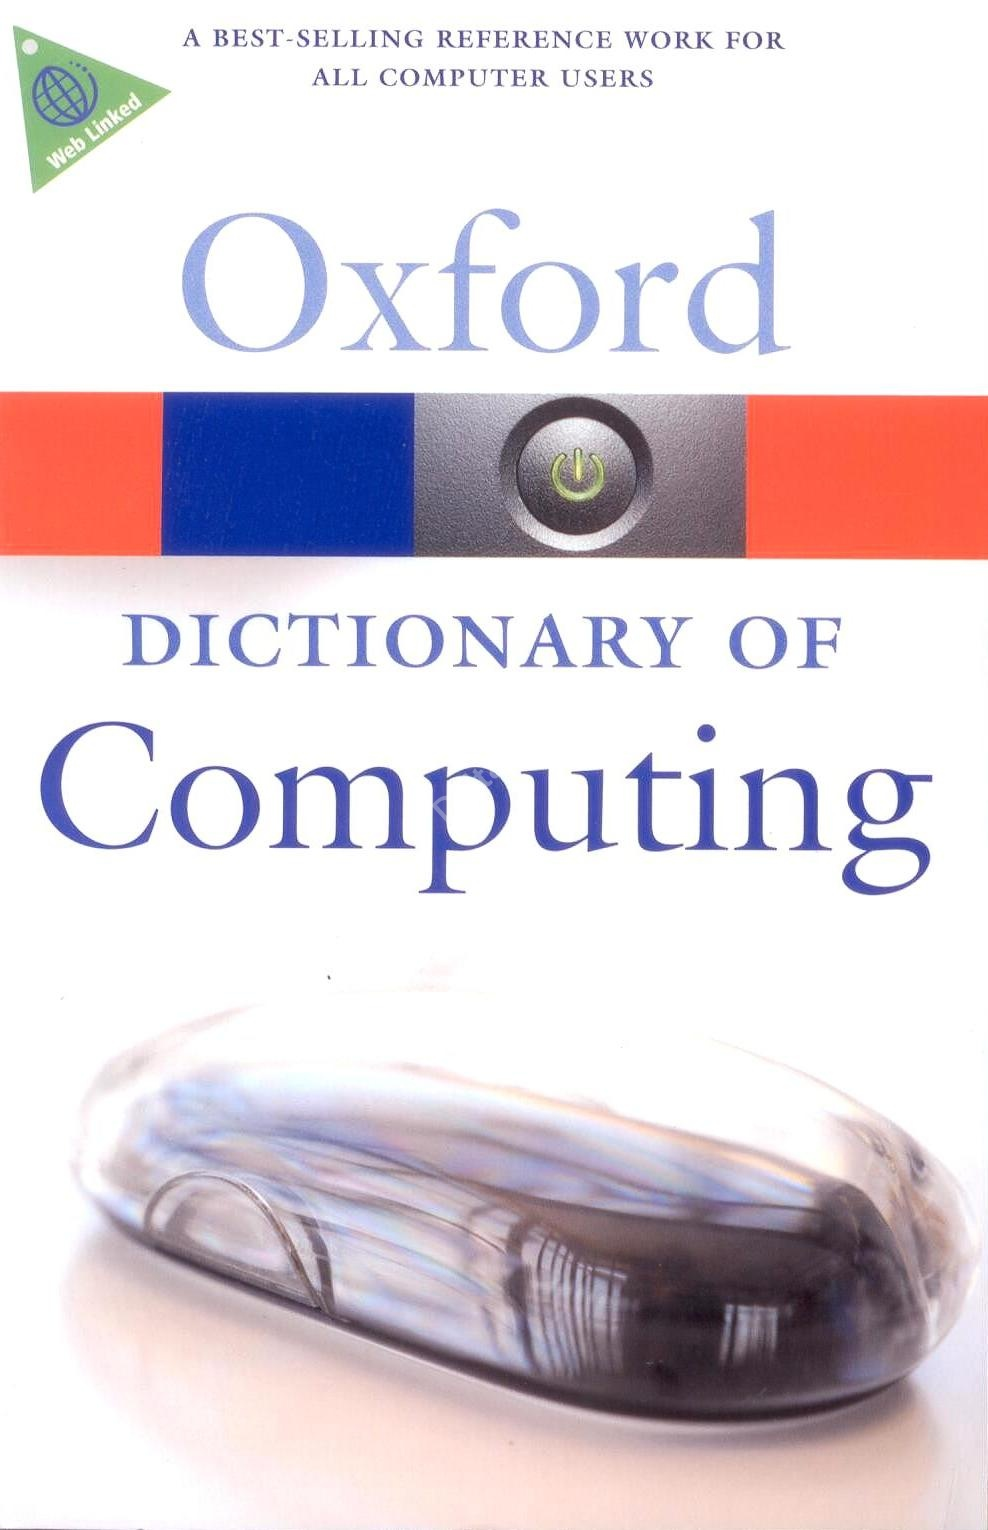 Oxford Dictionary of Computing (6th Edition)